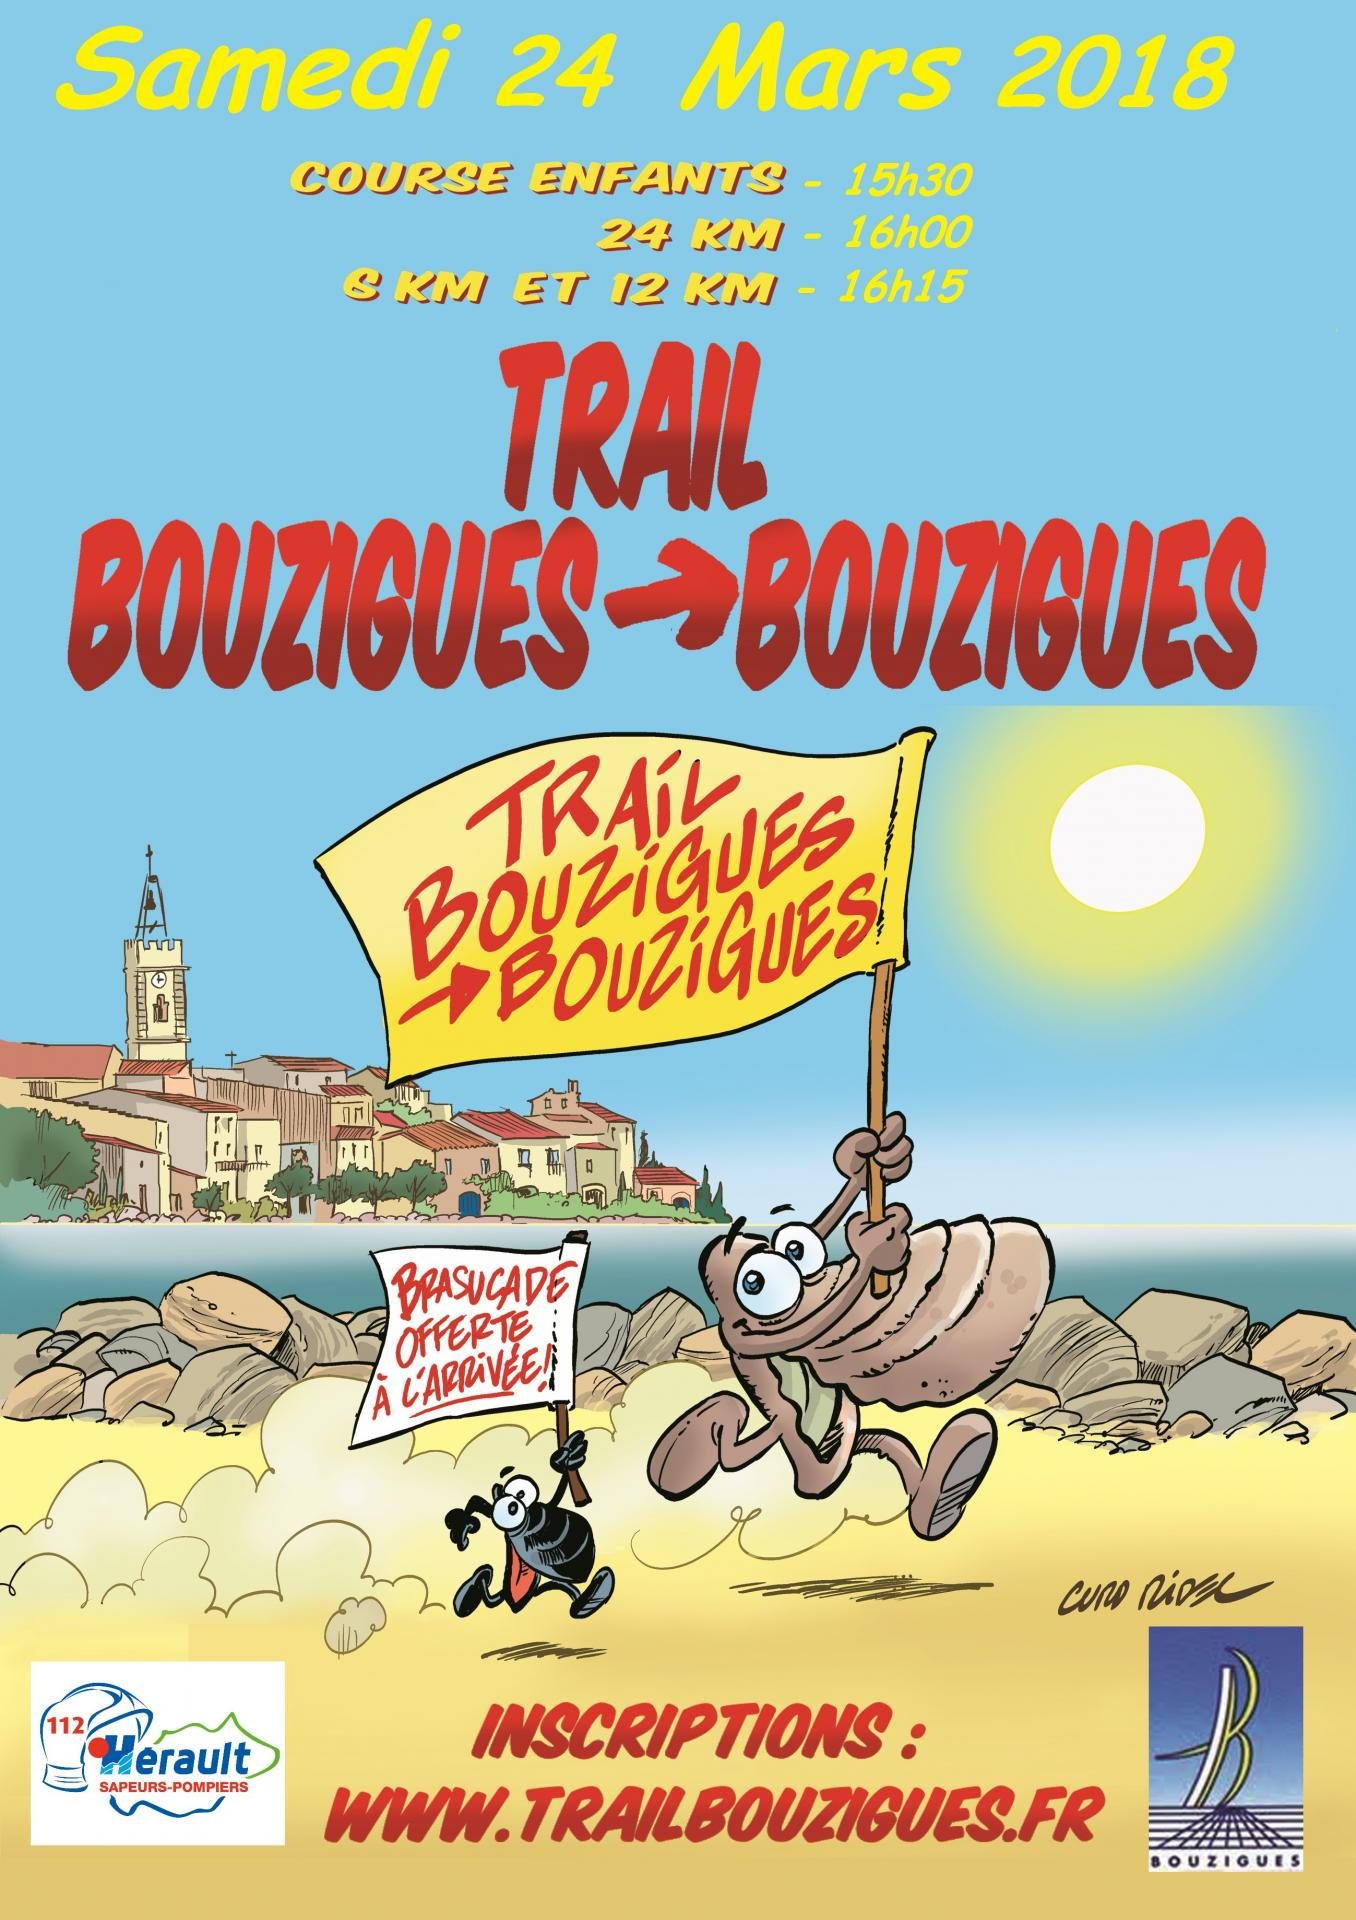 Trailbouzigues